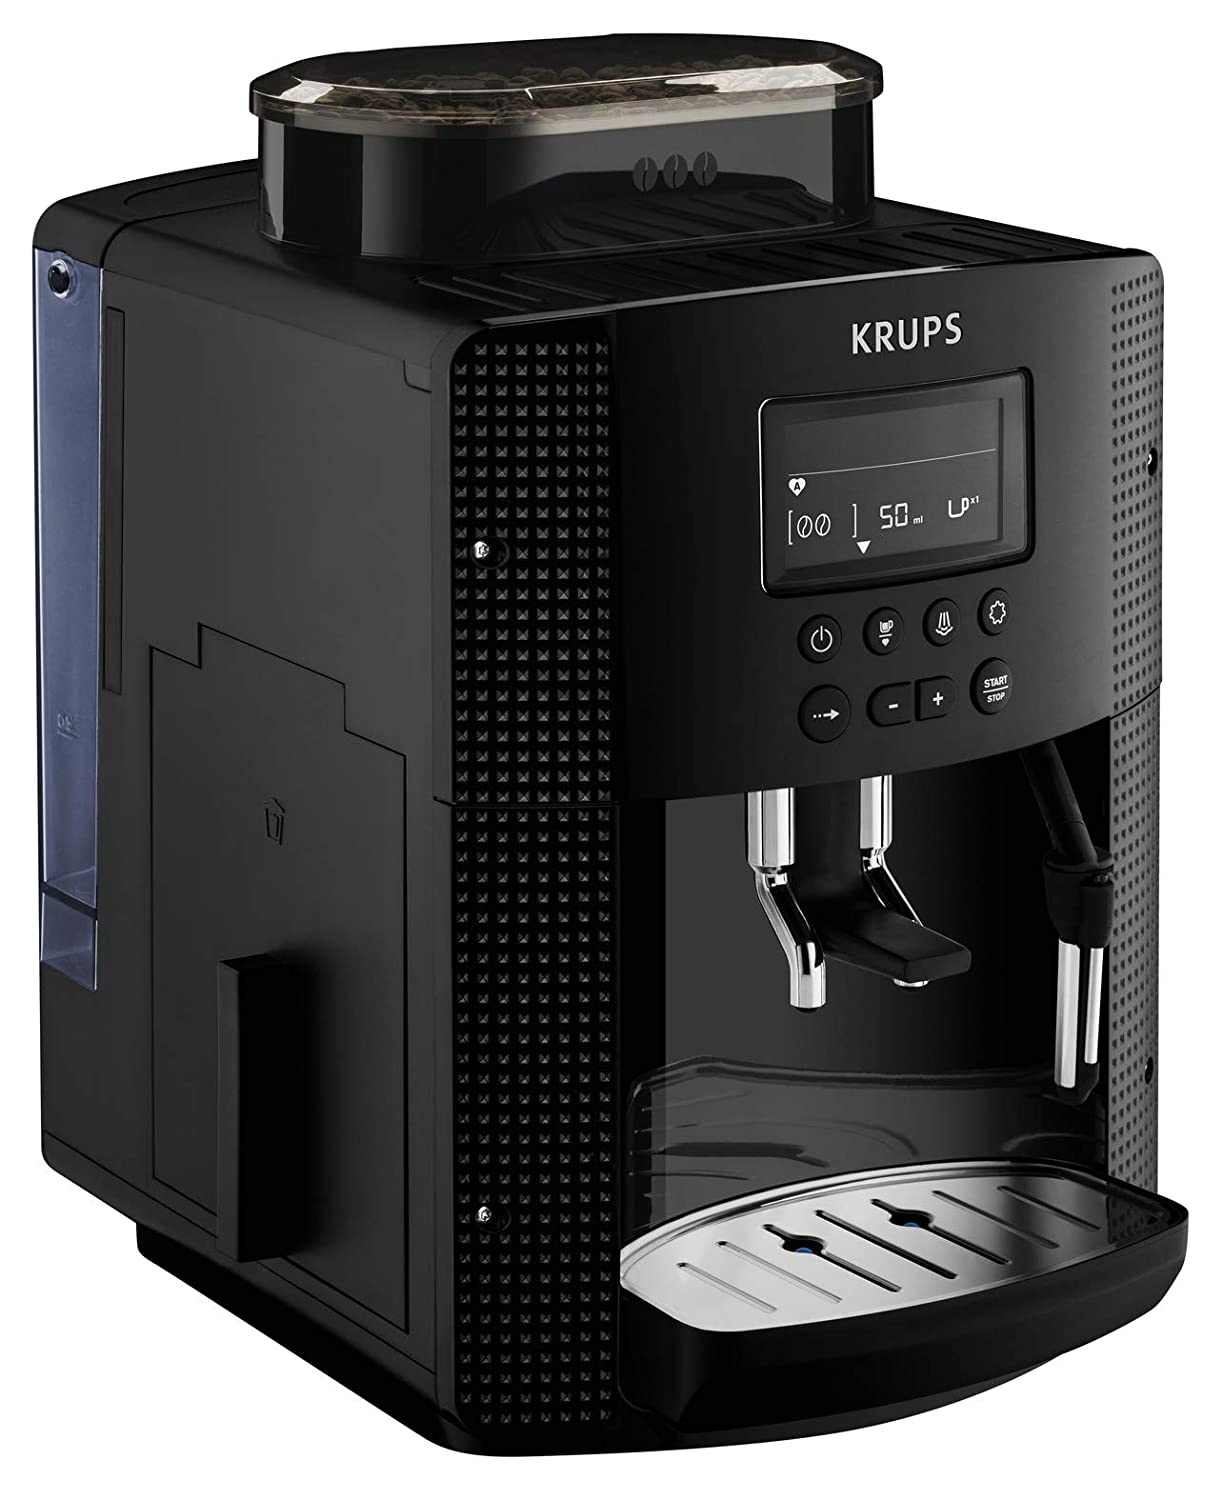 Krups Roma EA81M8 Fully Automatic Coffee Machine 1.7 L 3 Temperature Settings